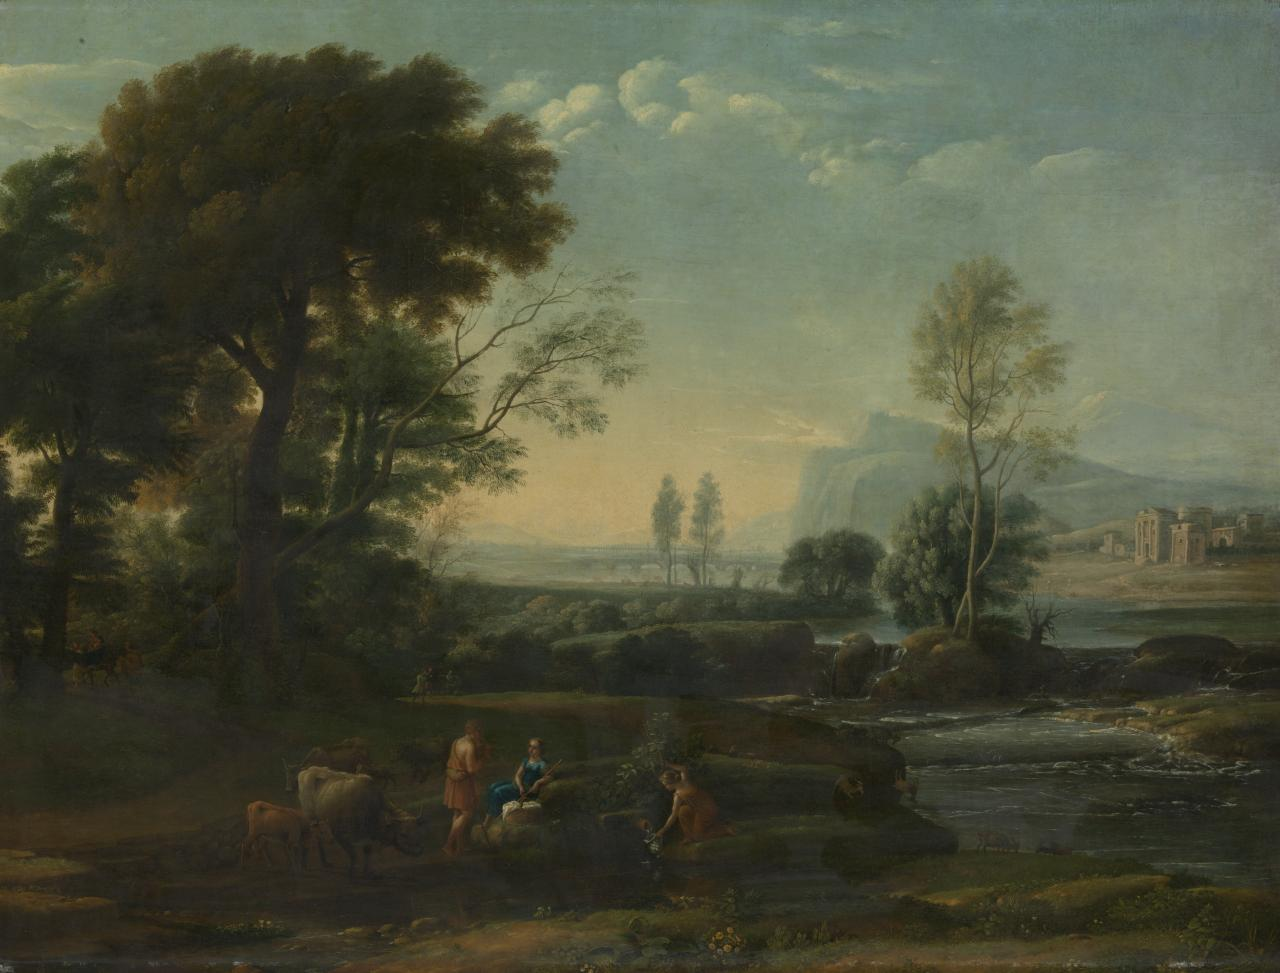 Landscape with piping shepherd and a flight to Egypt